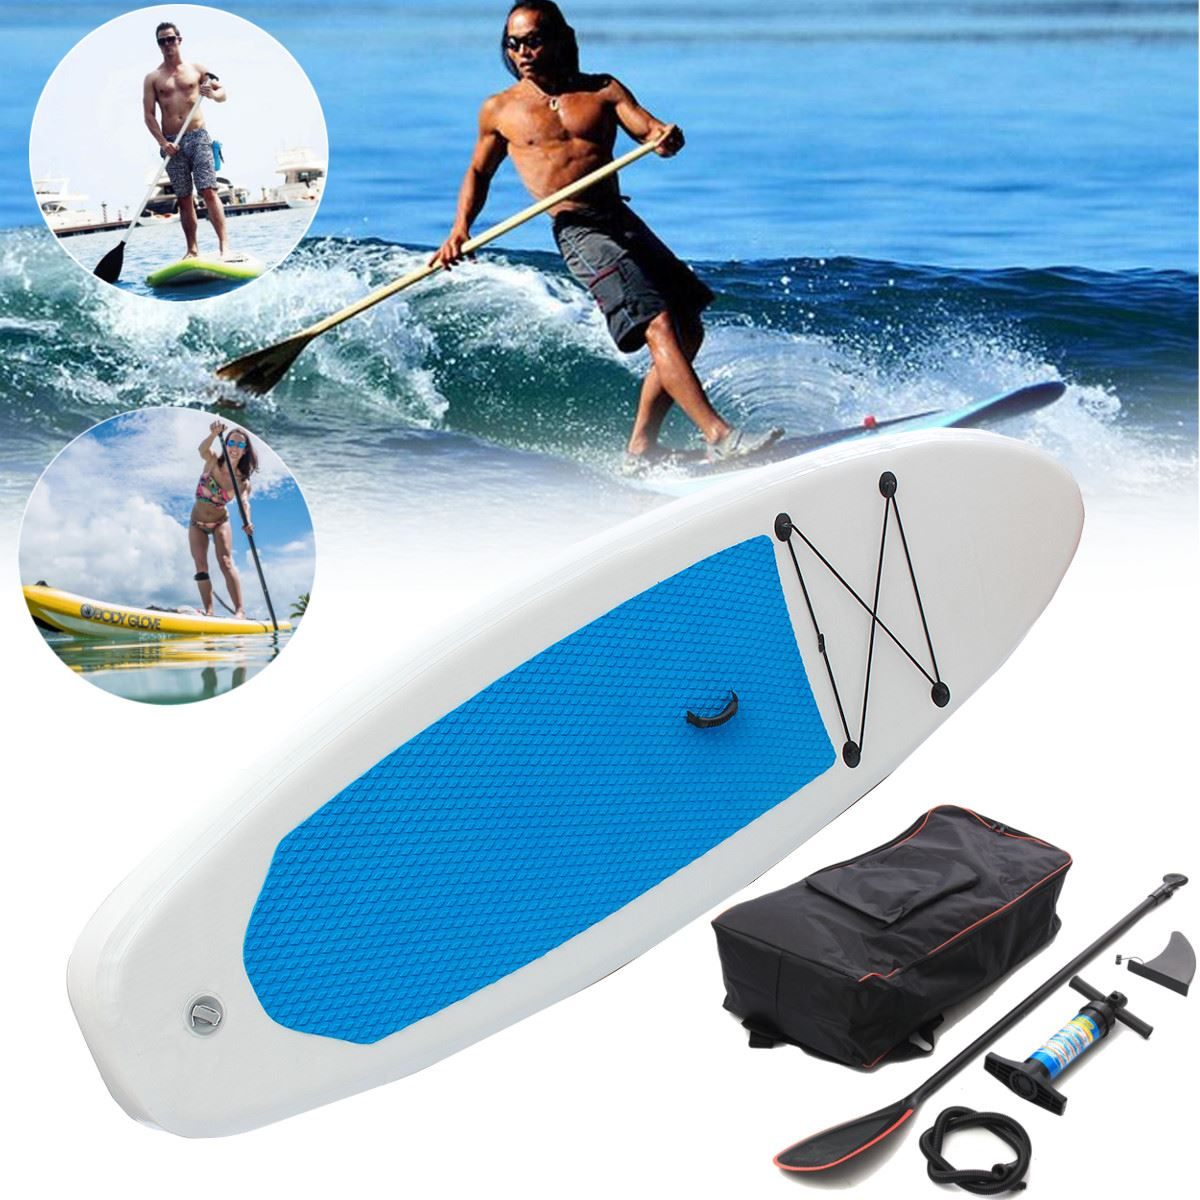 Gofun 122 x 27 x 4 Inch Stand Up Paddle Surfboard Inflatable Board SUP Set Wave Rider + Pump inflatable surf board paddle boat 2016 big cheaper 10 10 vapor surfing stand up paddle board sup board paddle board surf board sup kayak inflatable boat